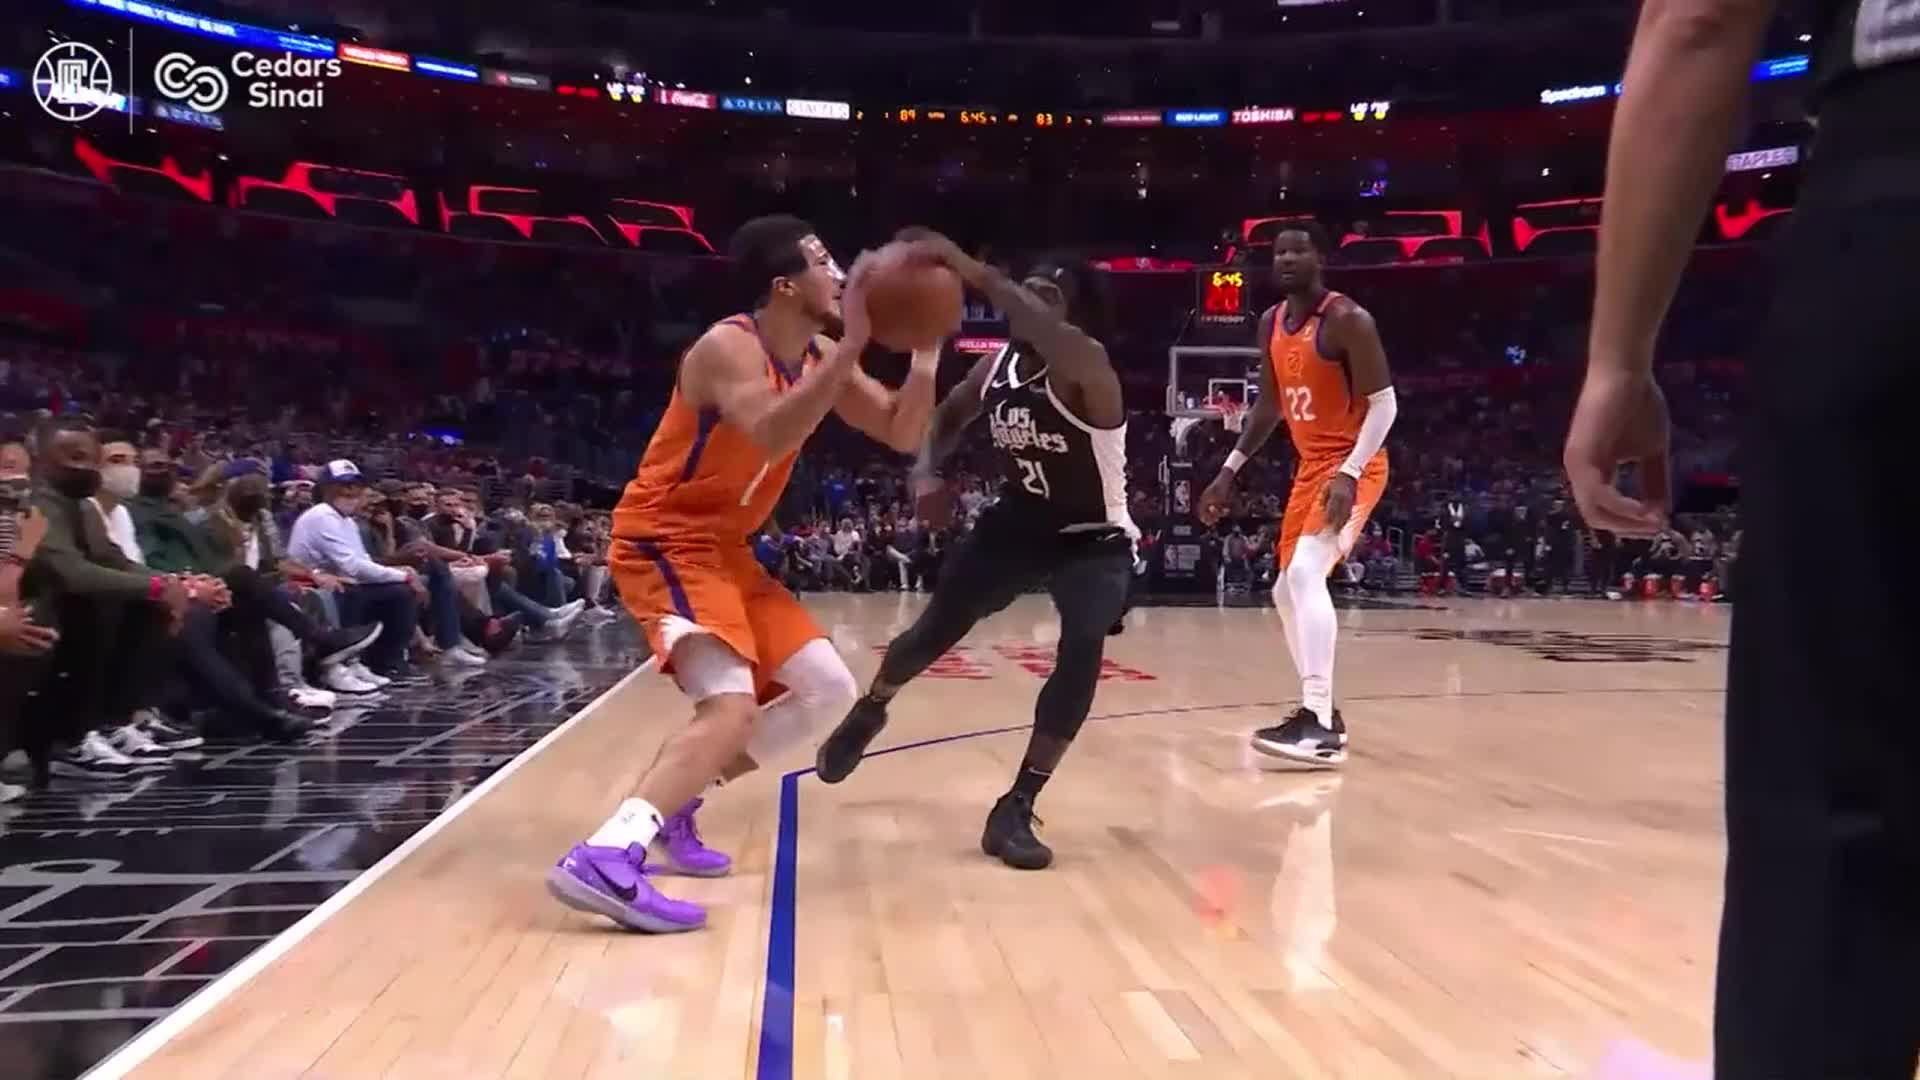 Cedars-Sinai Preventive Play of the Game | Clippers vs Suns Game 3 (6.24.21)